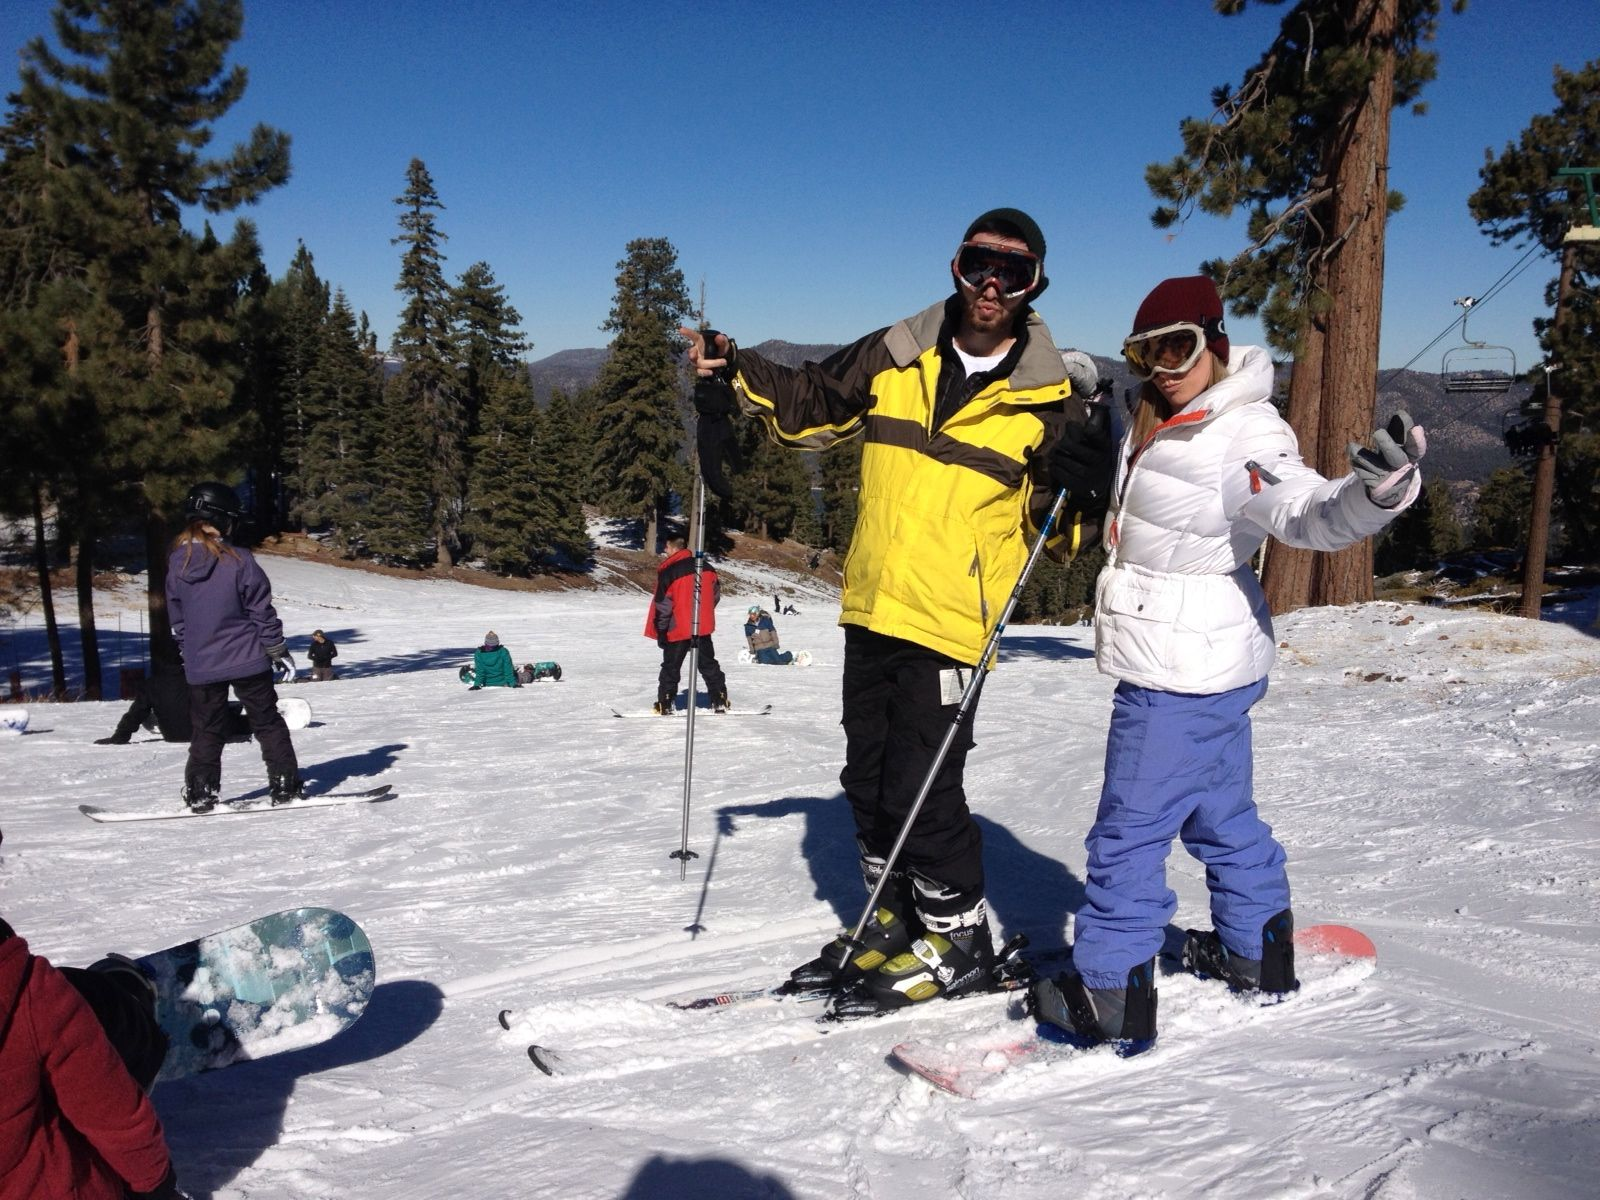 snowboarding and skiing in big bear